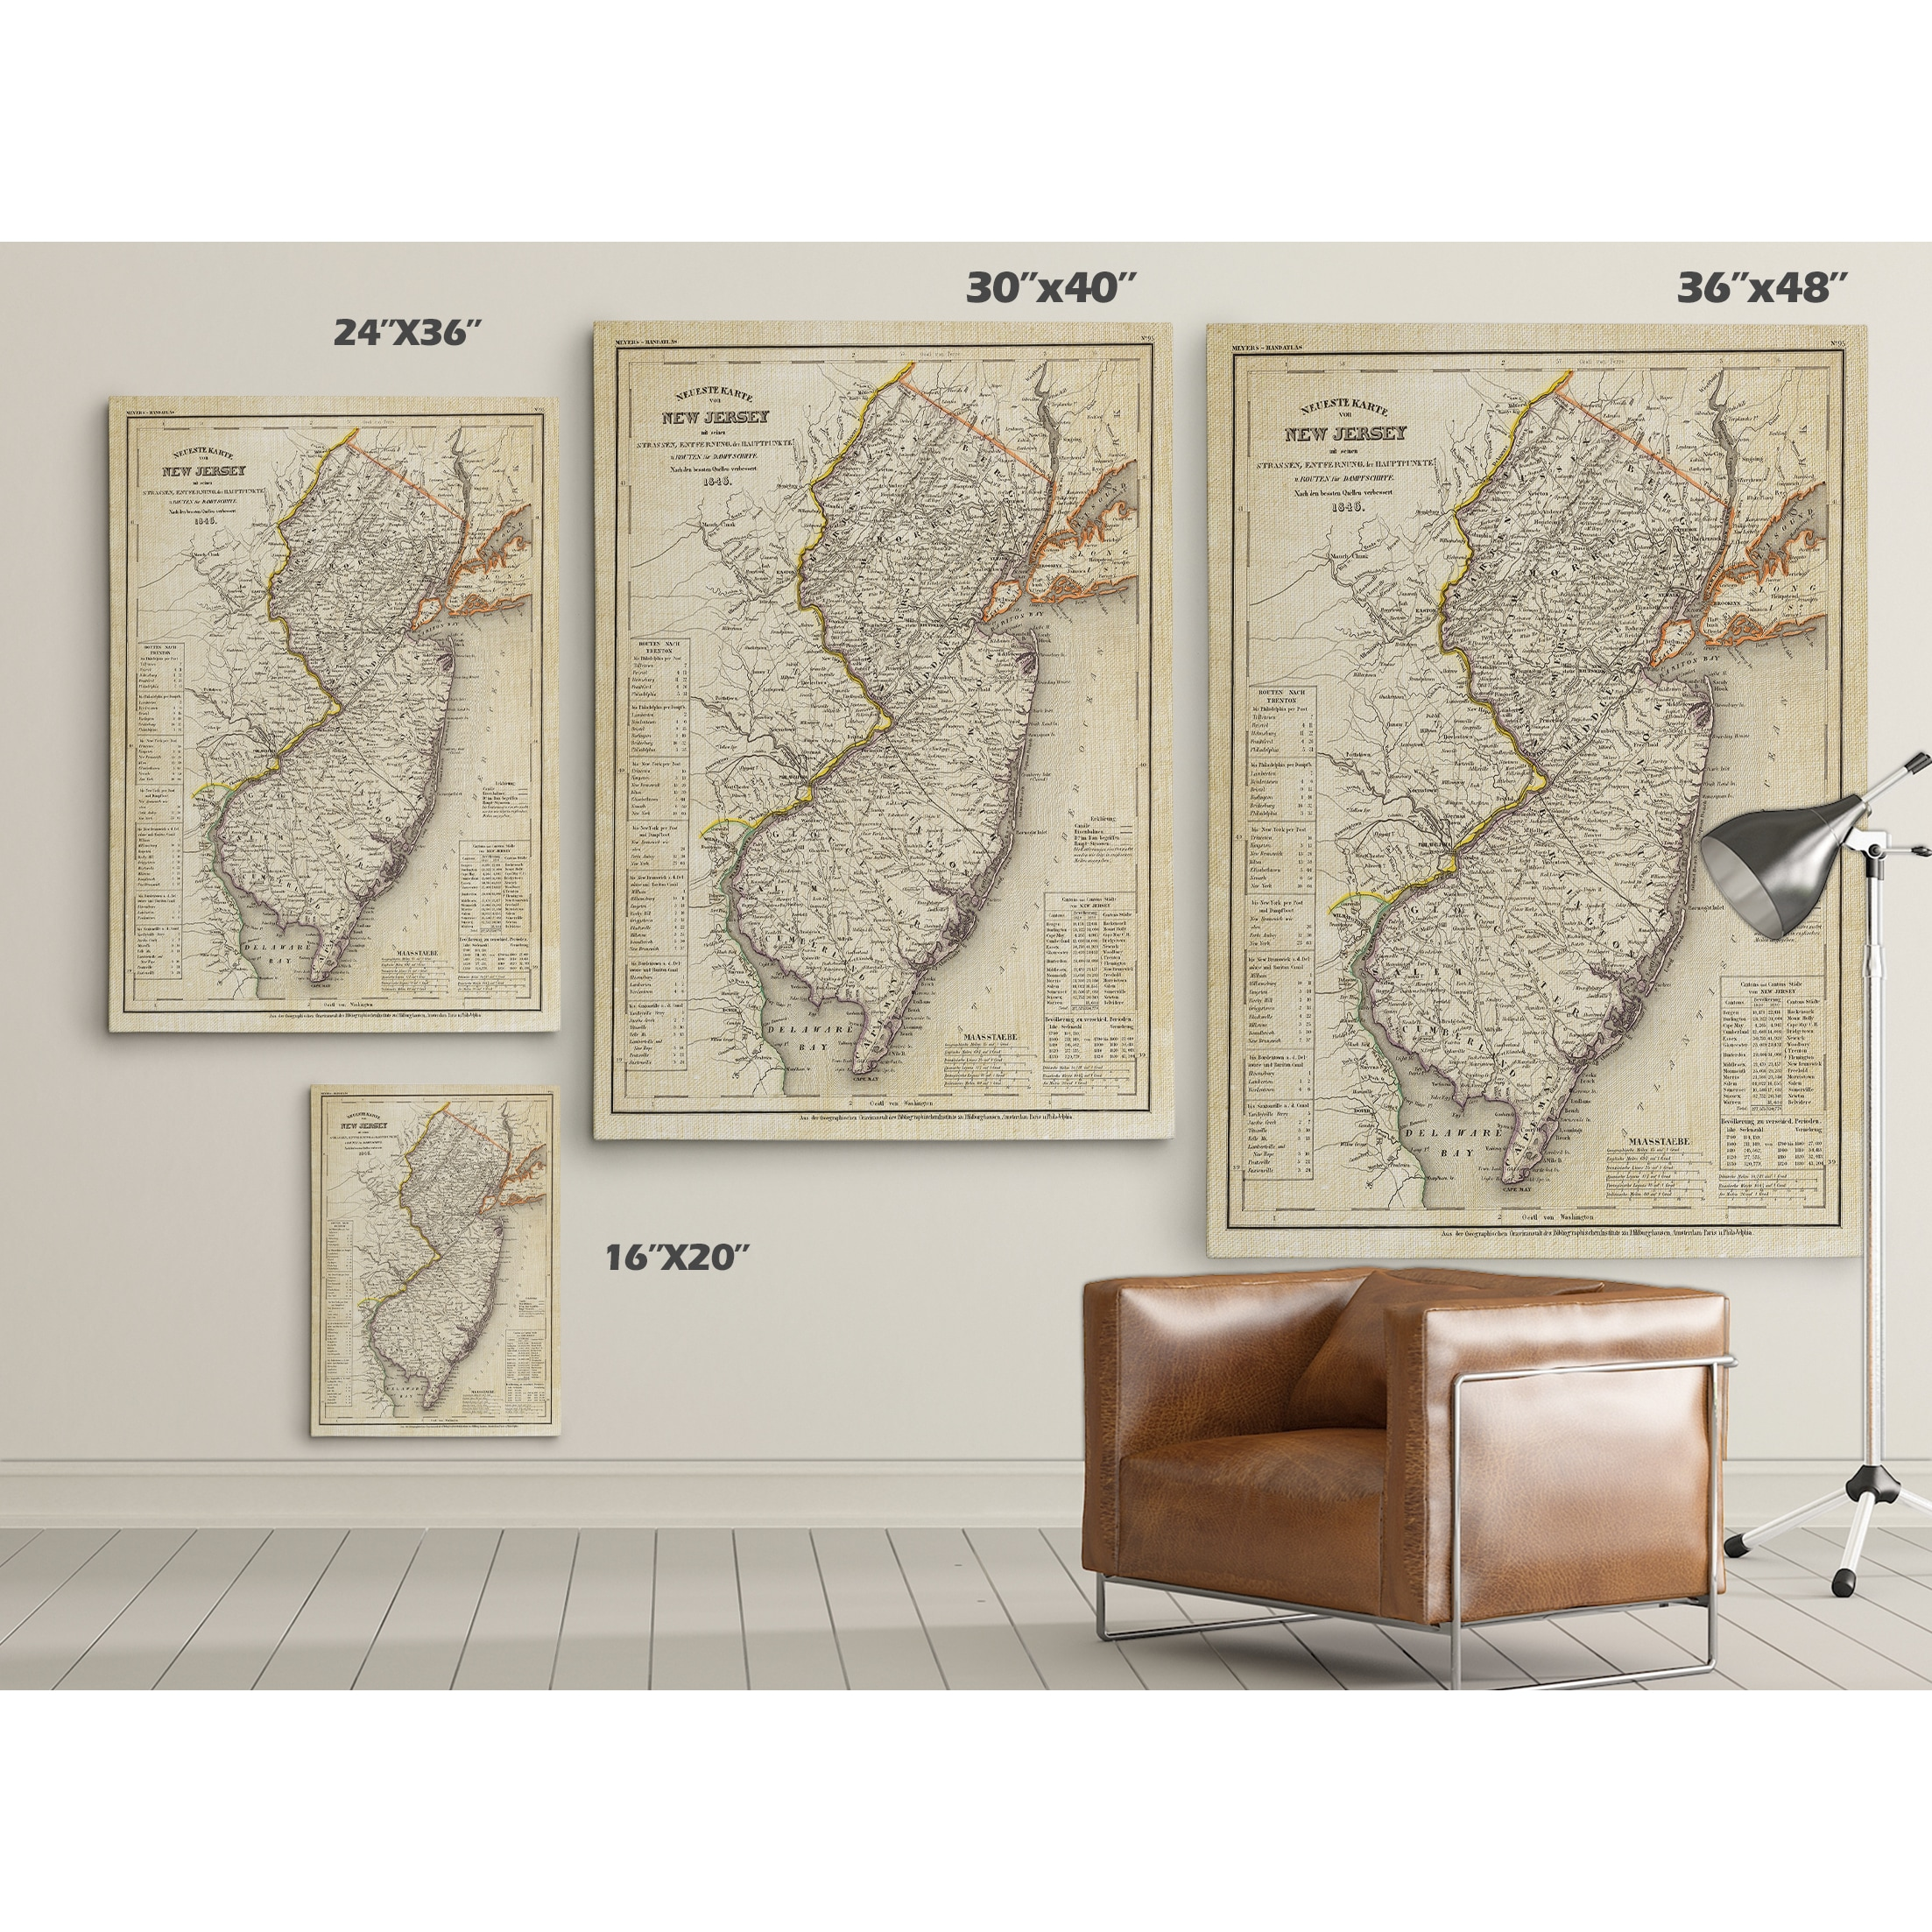 Shop Vintage Map New Jersey II Premium Gallery Wrapped Canvas - 36 x 48 world map